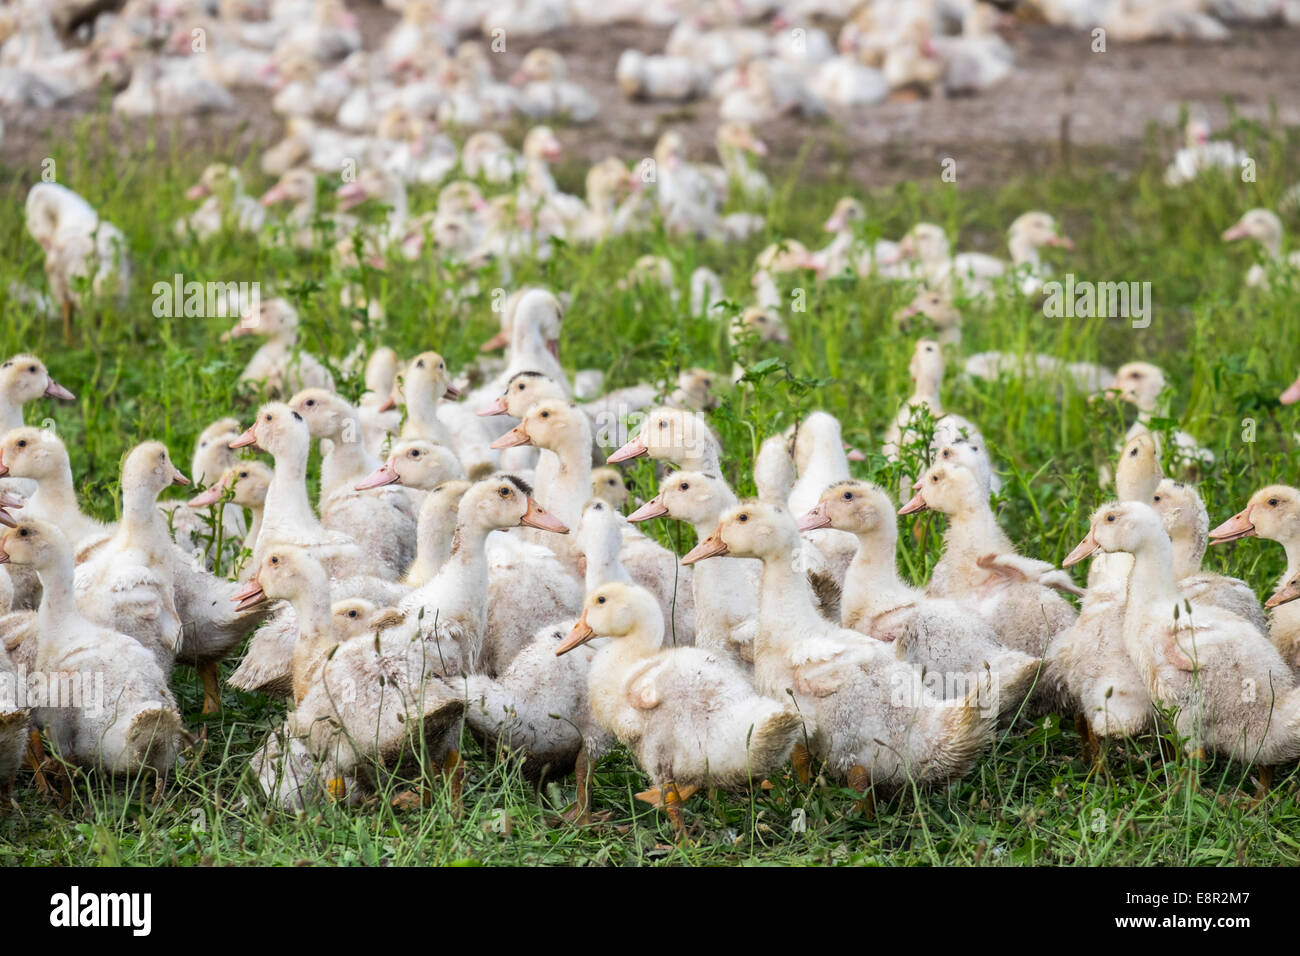 Ducks being farmed for Foie Gras and confit. Gers department, Midi-Pyrénées France - Stock Image